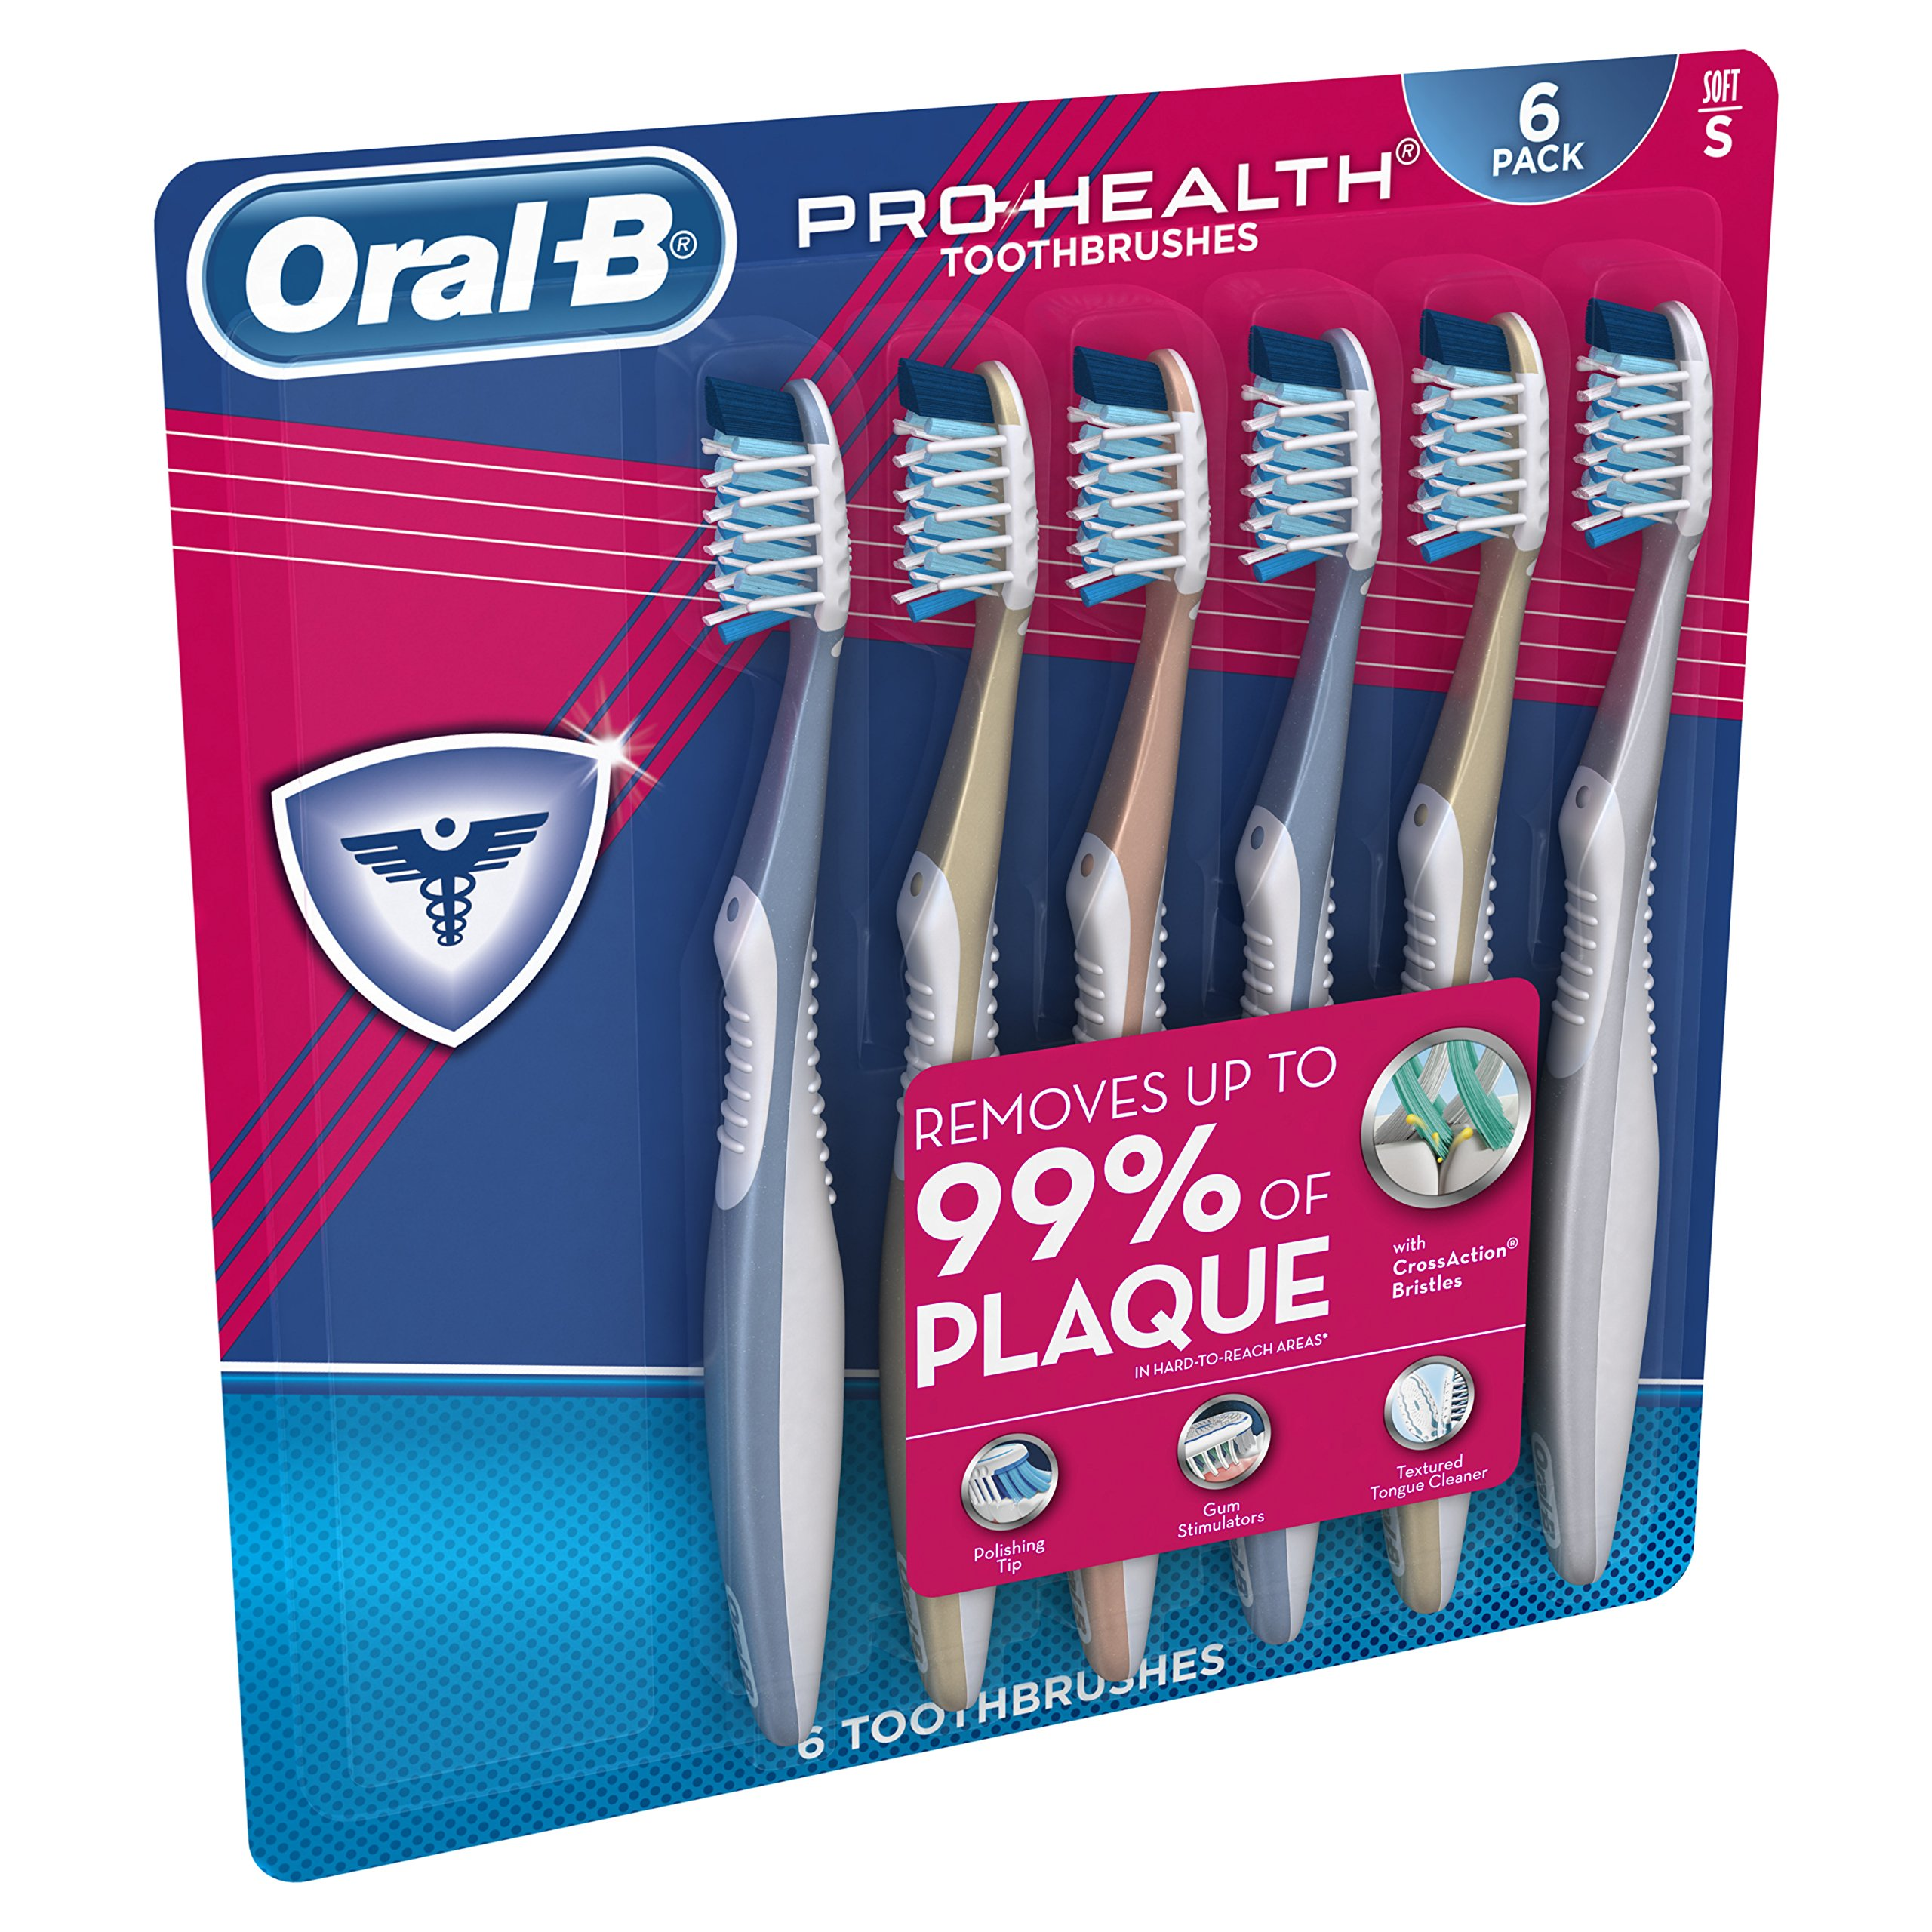 Oral-B Pro Health All In One Soft Toothbrushes, 6 Count by Oral B (Image #3)